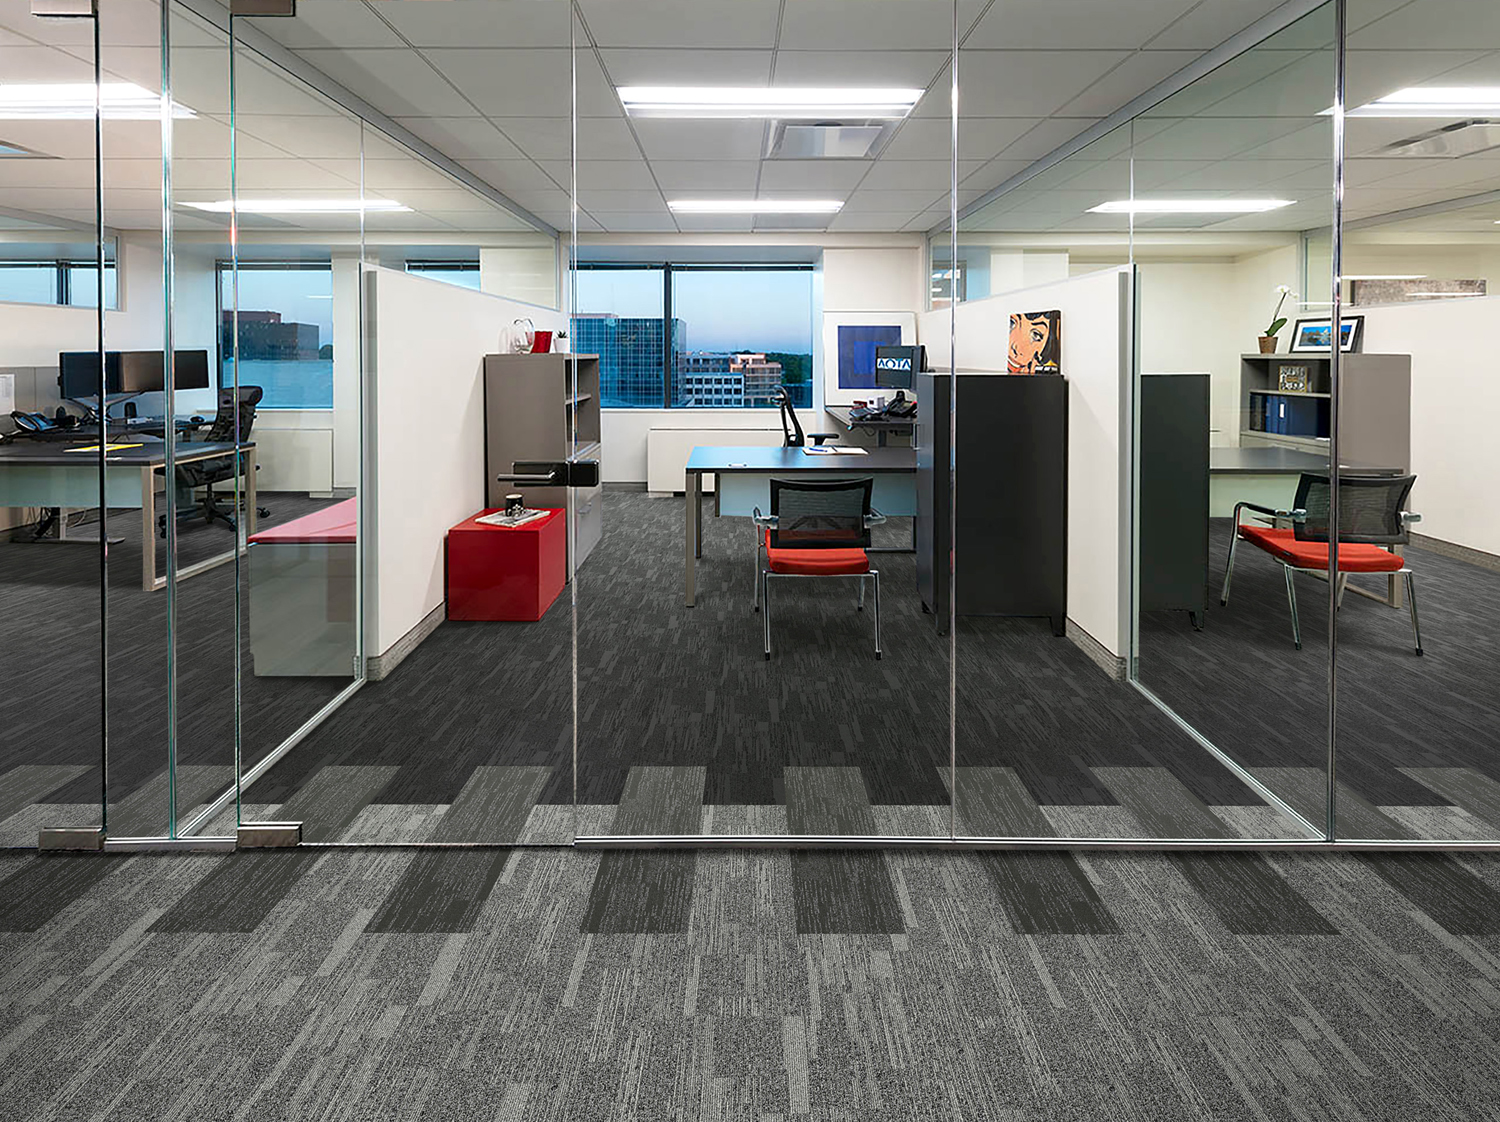 Mesa colors coordinate to facilitate the creative floor installations.